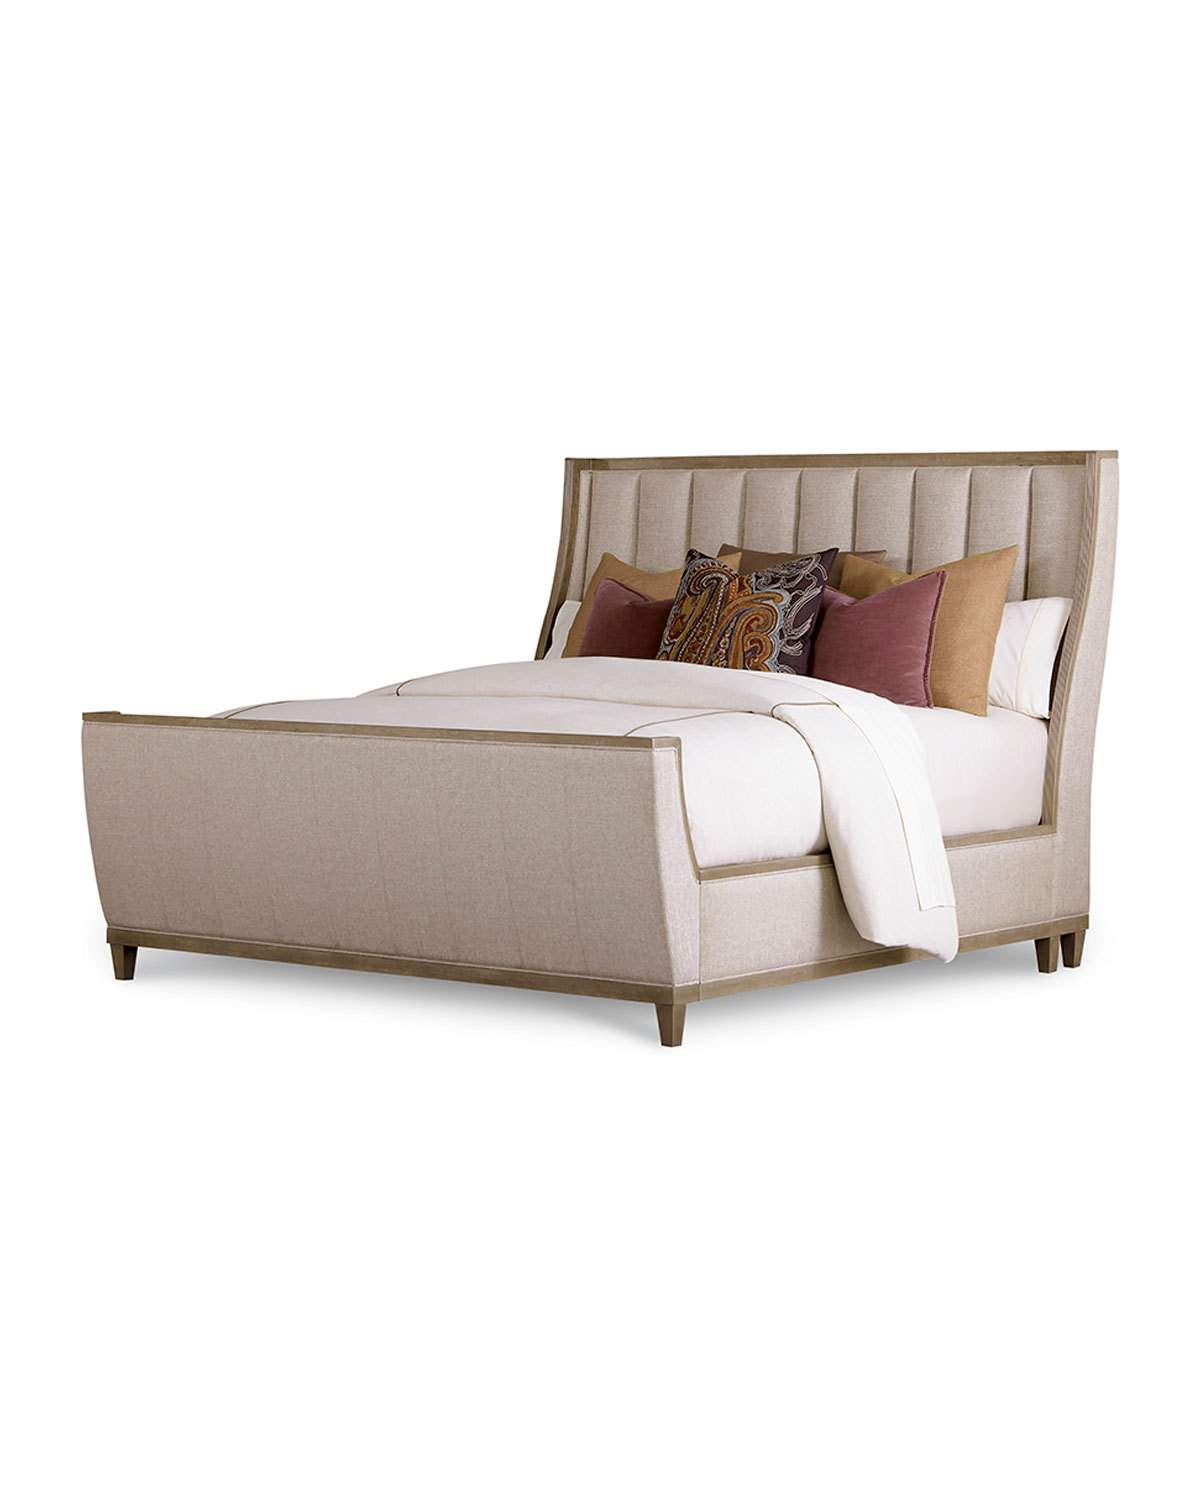 Best East Abbott Channel Tufted Queen Bed In 2020 Sleigh Beds 400 x 300